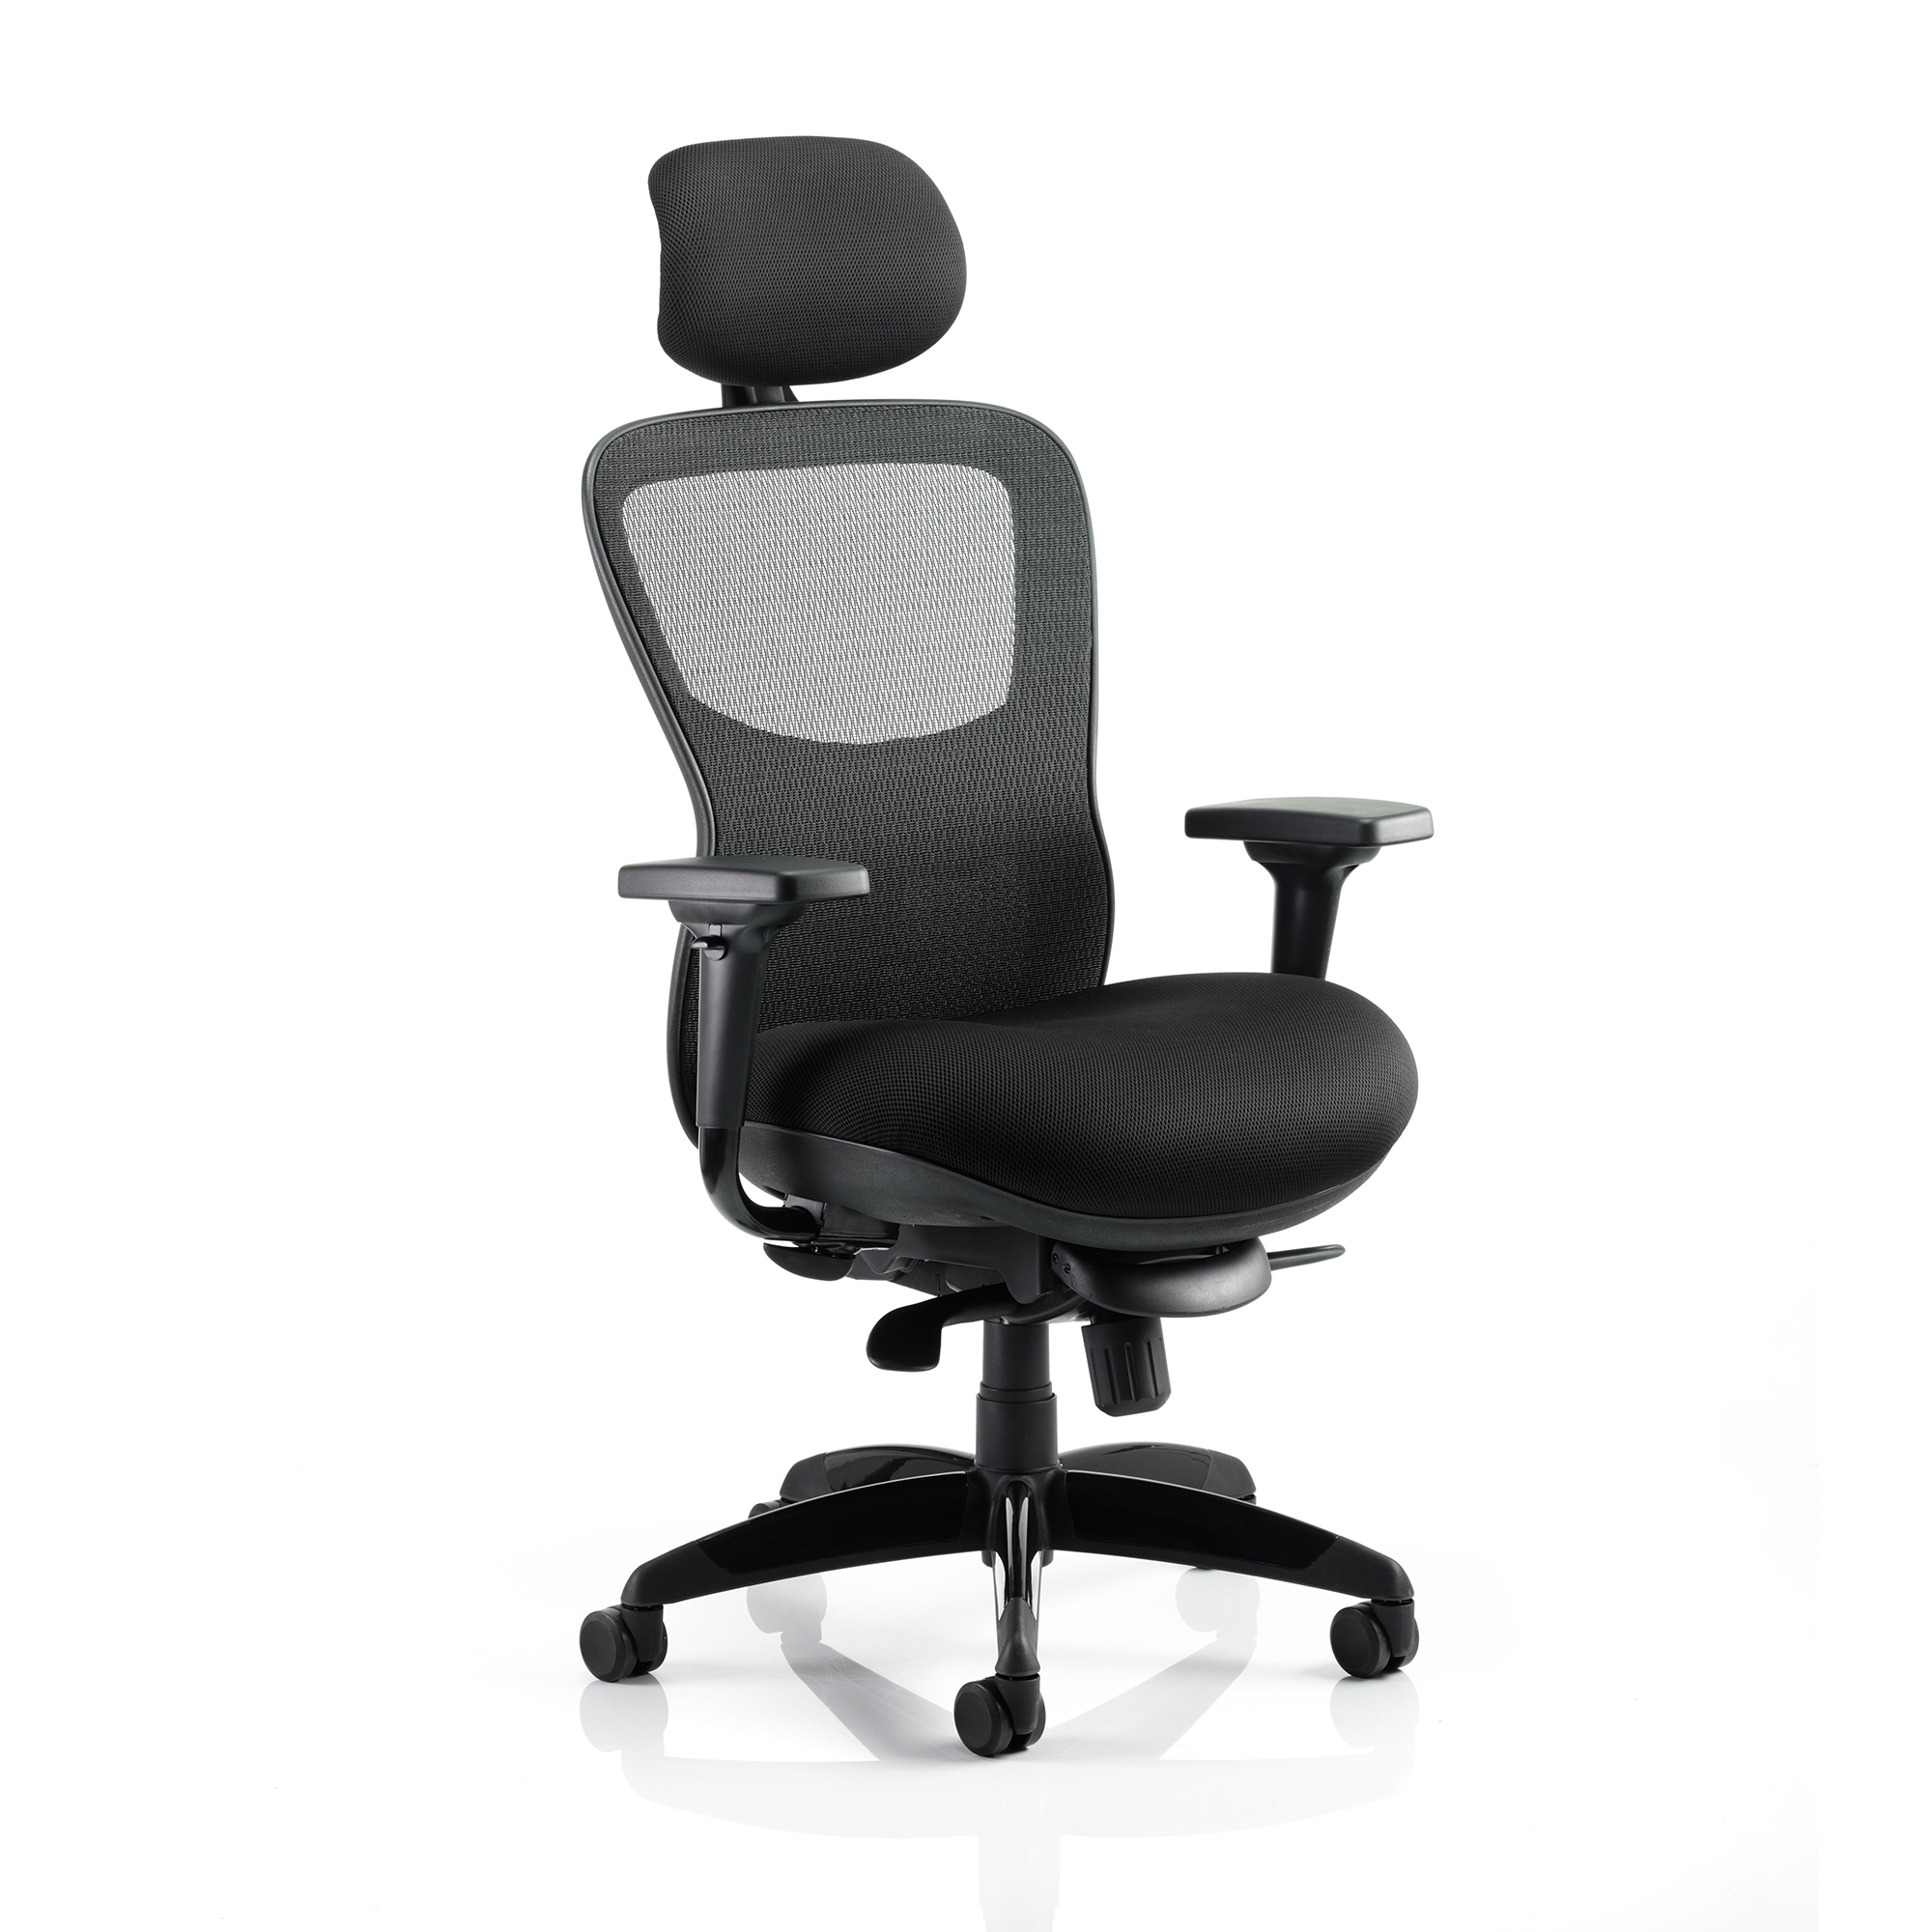 Task seating Adroit Stealth Shadow Ergo Posture Chair With Arms With Headrest Airmesh Seat Mesh Back Black Ref KC0158